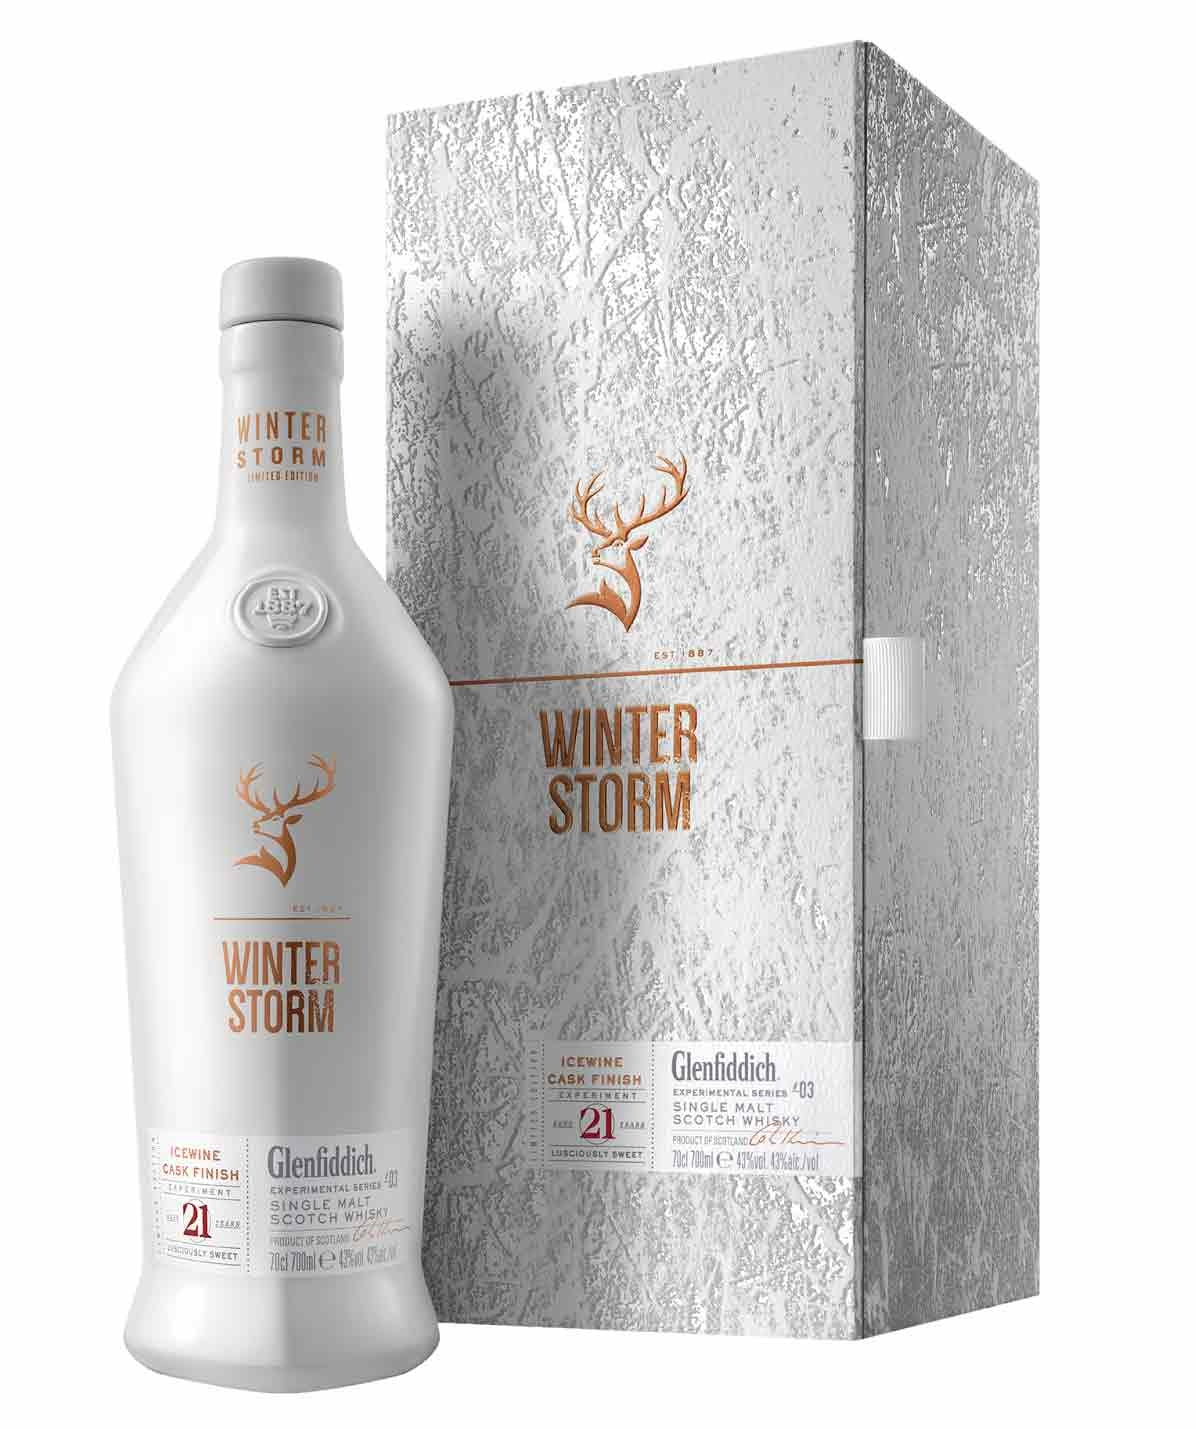 Glenfiddich Winter Storm | Experimental Series #03